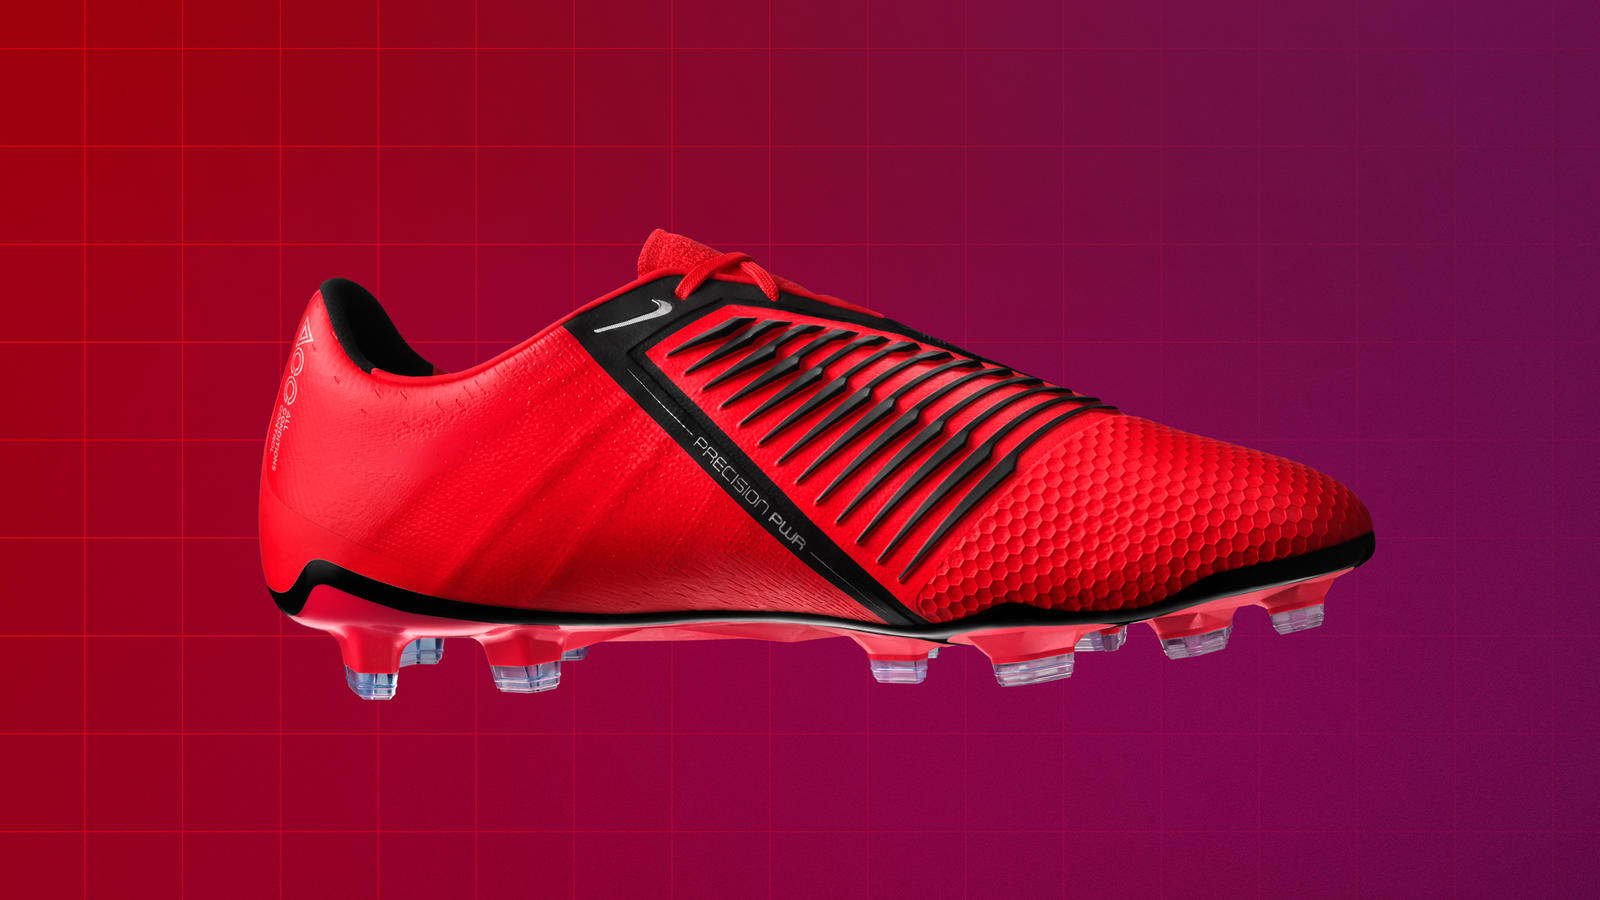 nike new football boots sale   Up to 70